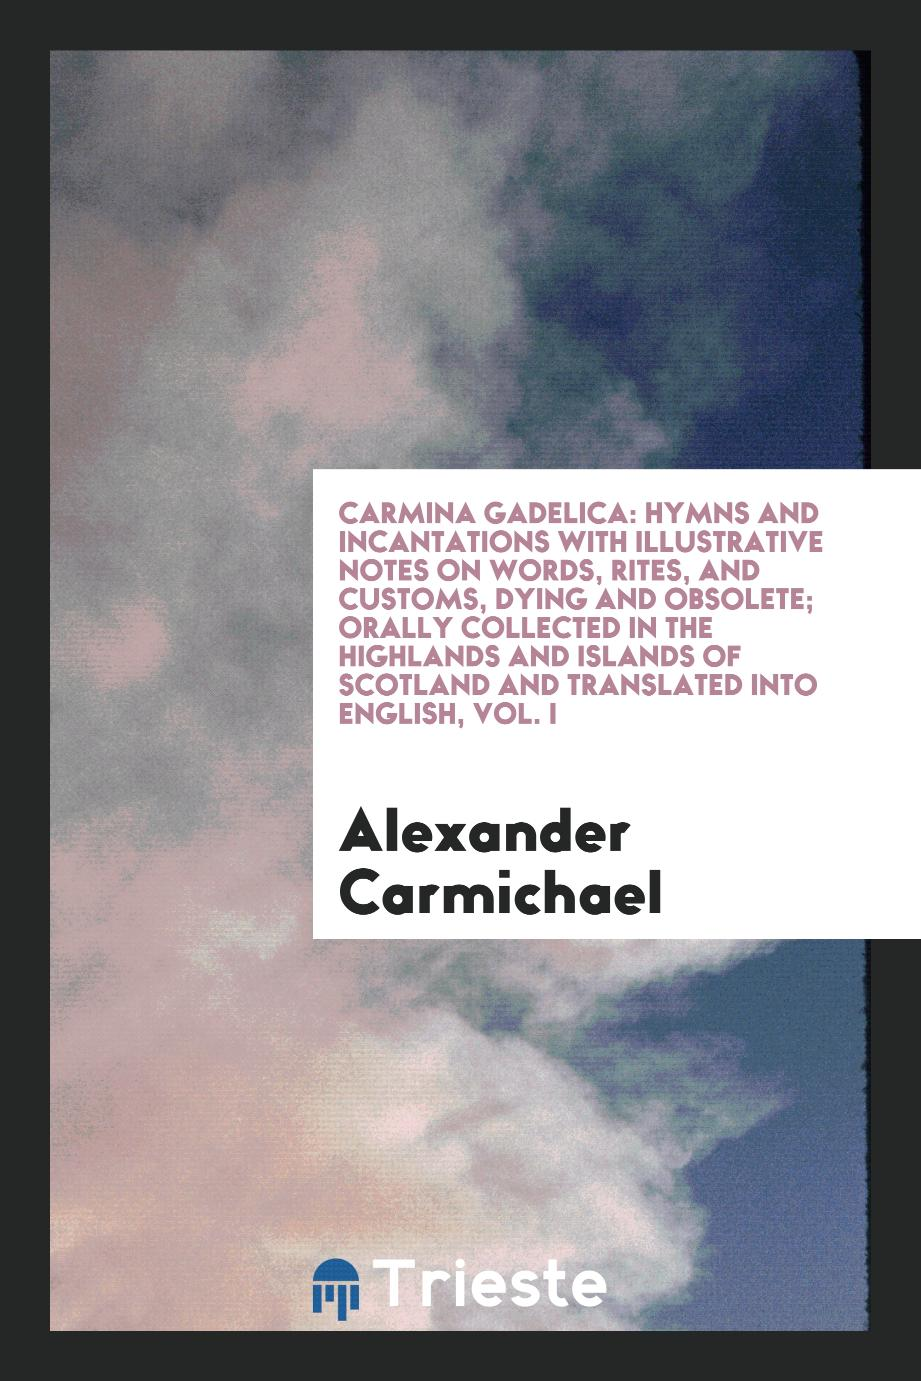 Carmina Gadelica: Hymns and Incantations with Illustrative Notes on Words, Rites, and Customs, Dying and Obsolete; Orally Collected in the Highlands and Islands of Scotland and Translated into English, Vol. I